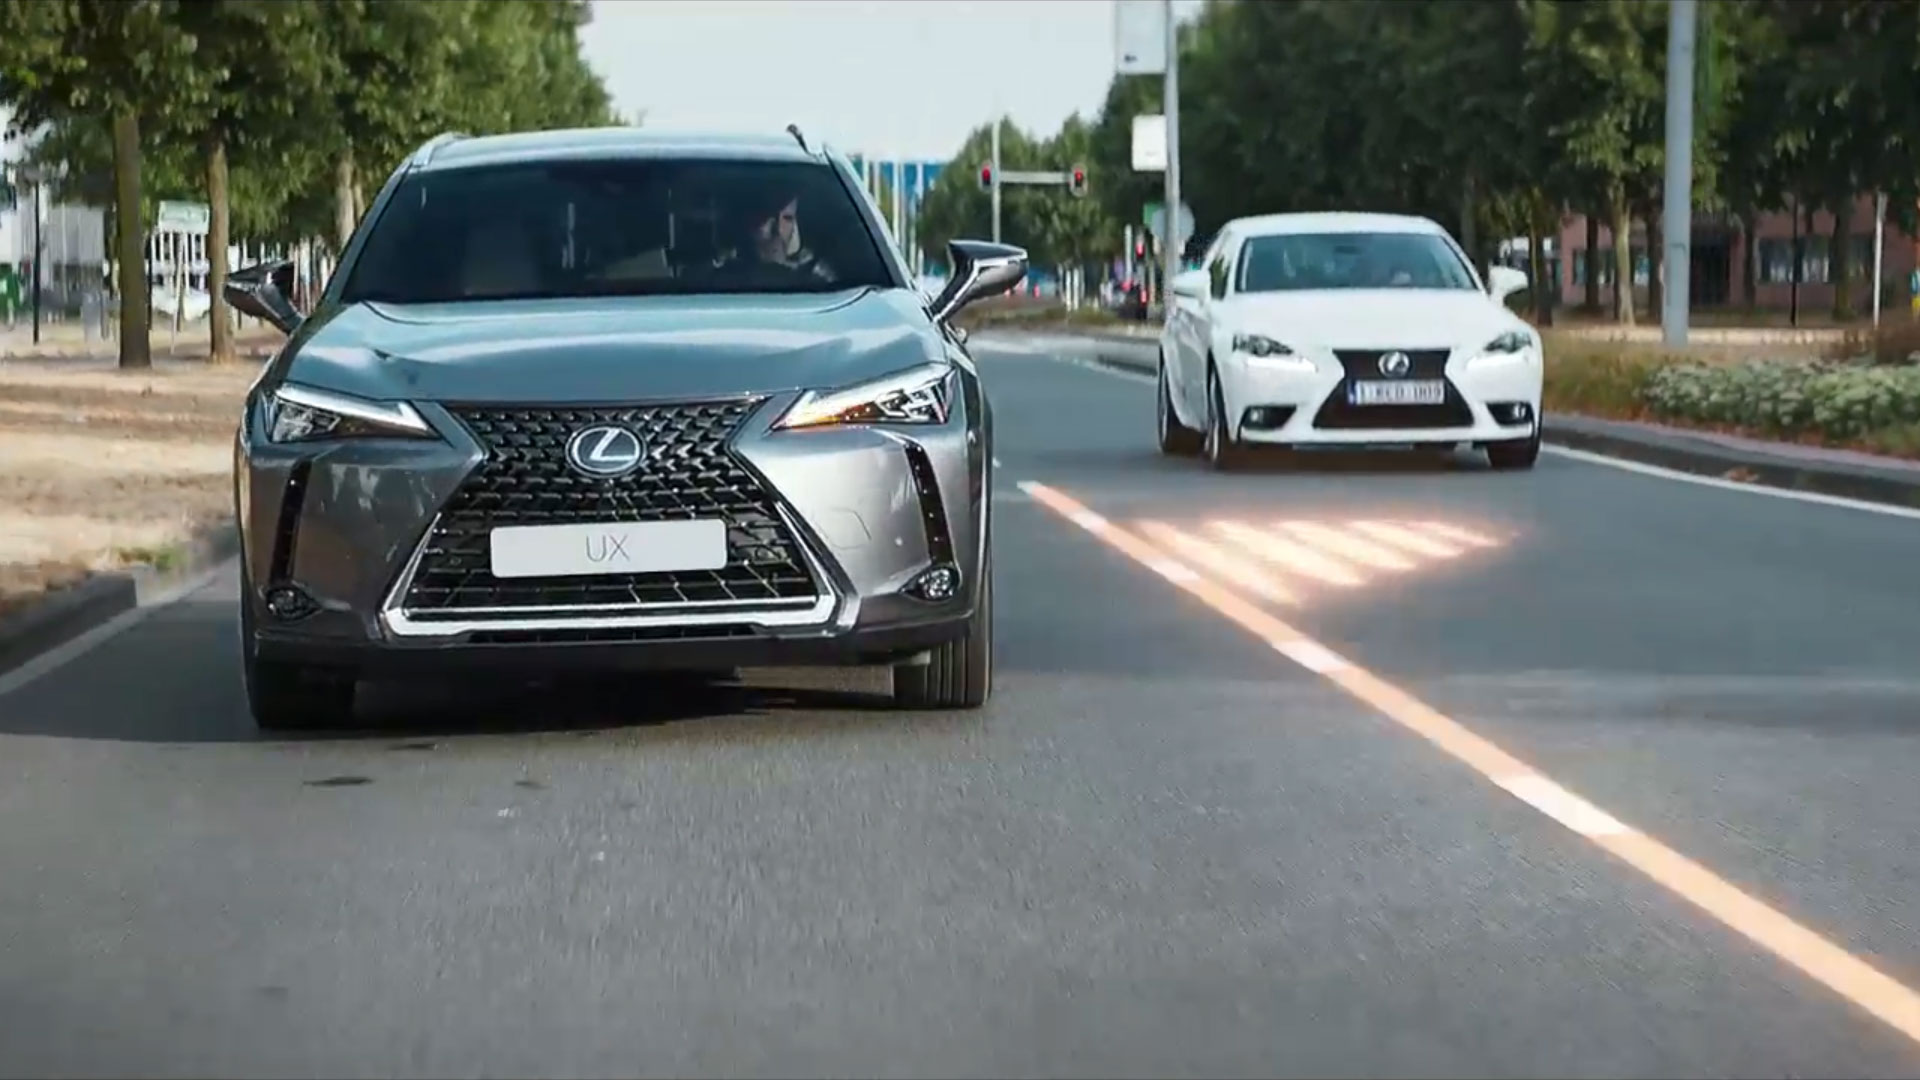 2018 lexus ux interactive technology safety blind spot monitor